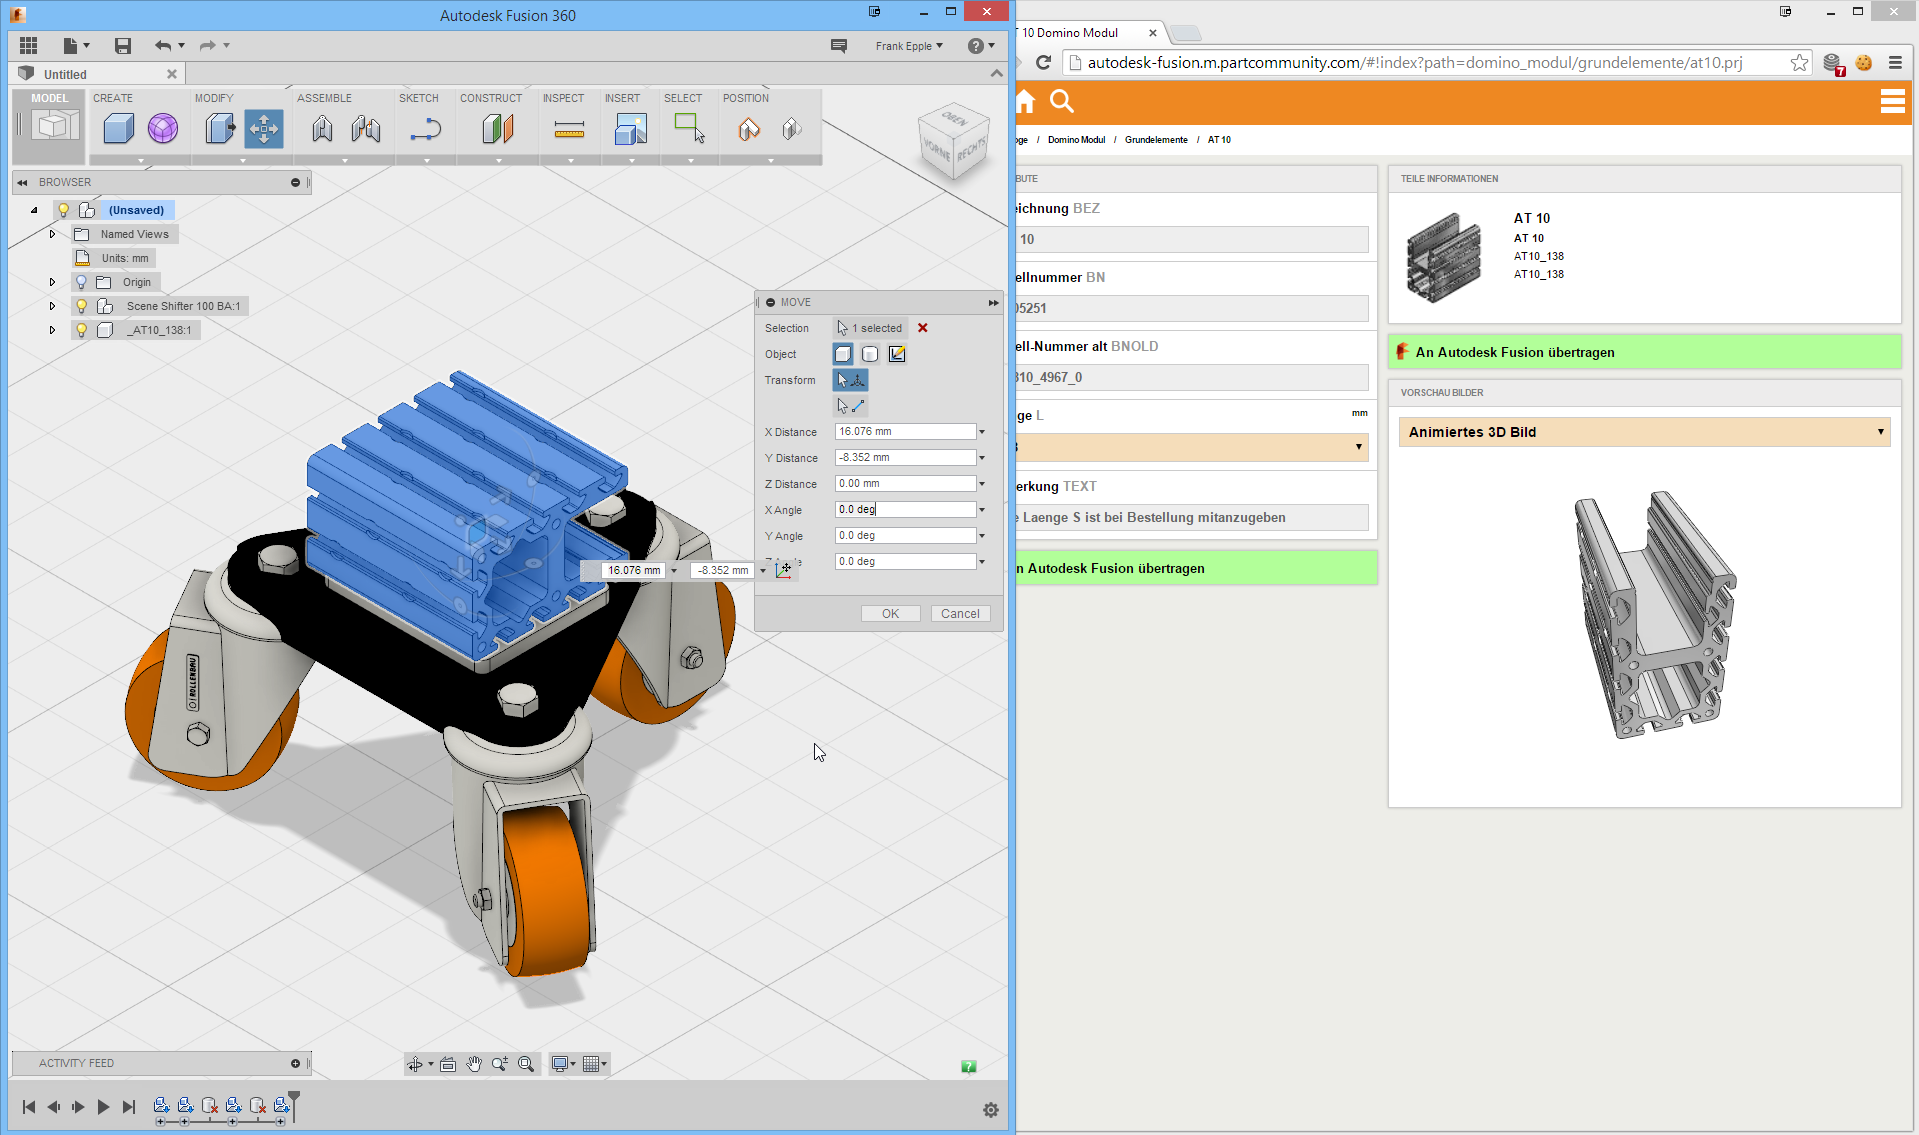 New app provides millions of 3d cad models for autodesk 3d modeling app